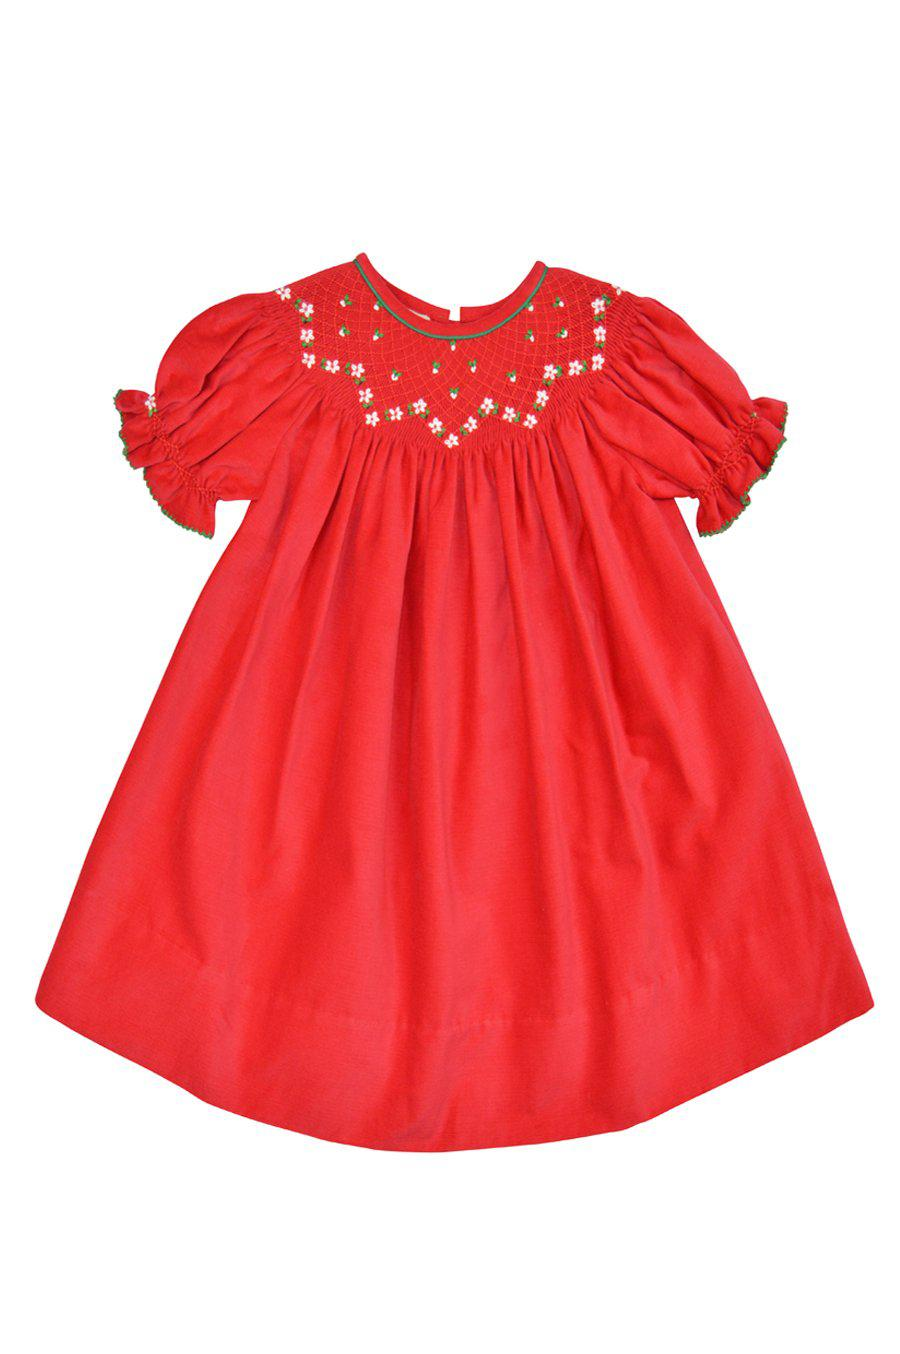 Heather Red Cotton Smocked Bishop dress - Little Threads Inc. Children's Clothing